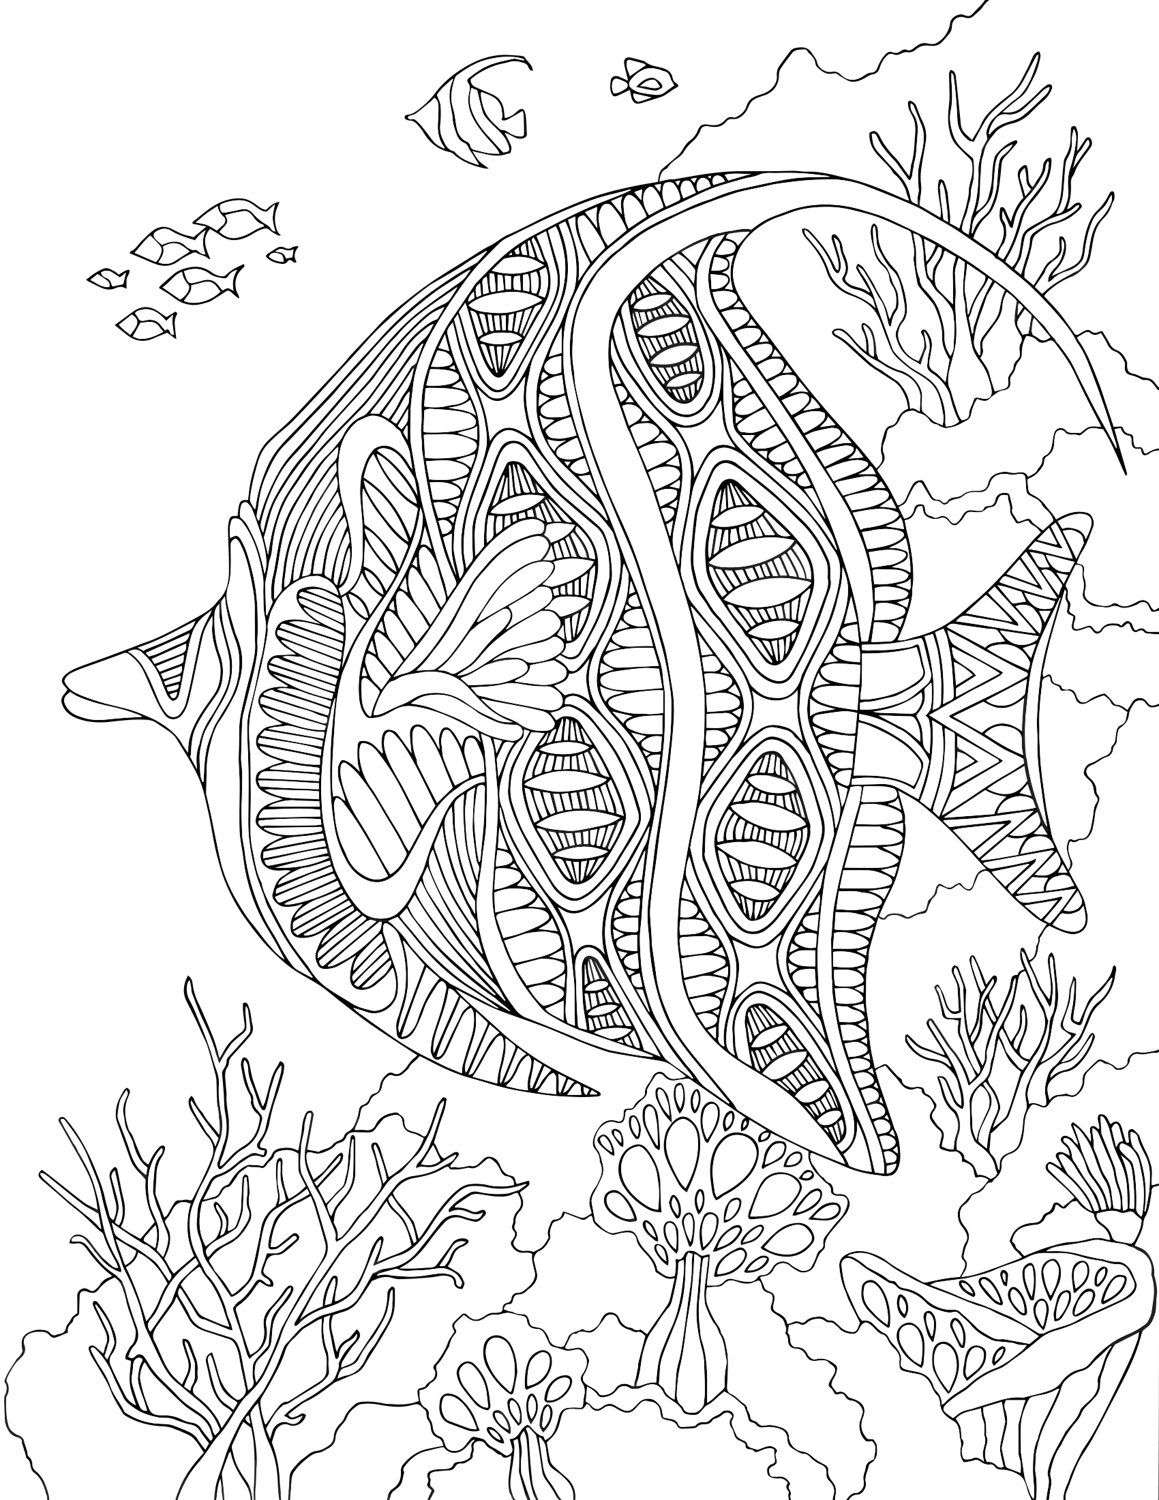 under the sea coloring pages pdf under the sea coloring page coloring page free seas and the under pages pdf sea coloring